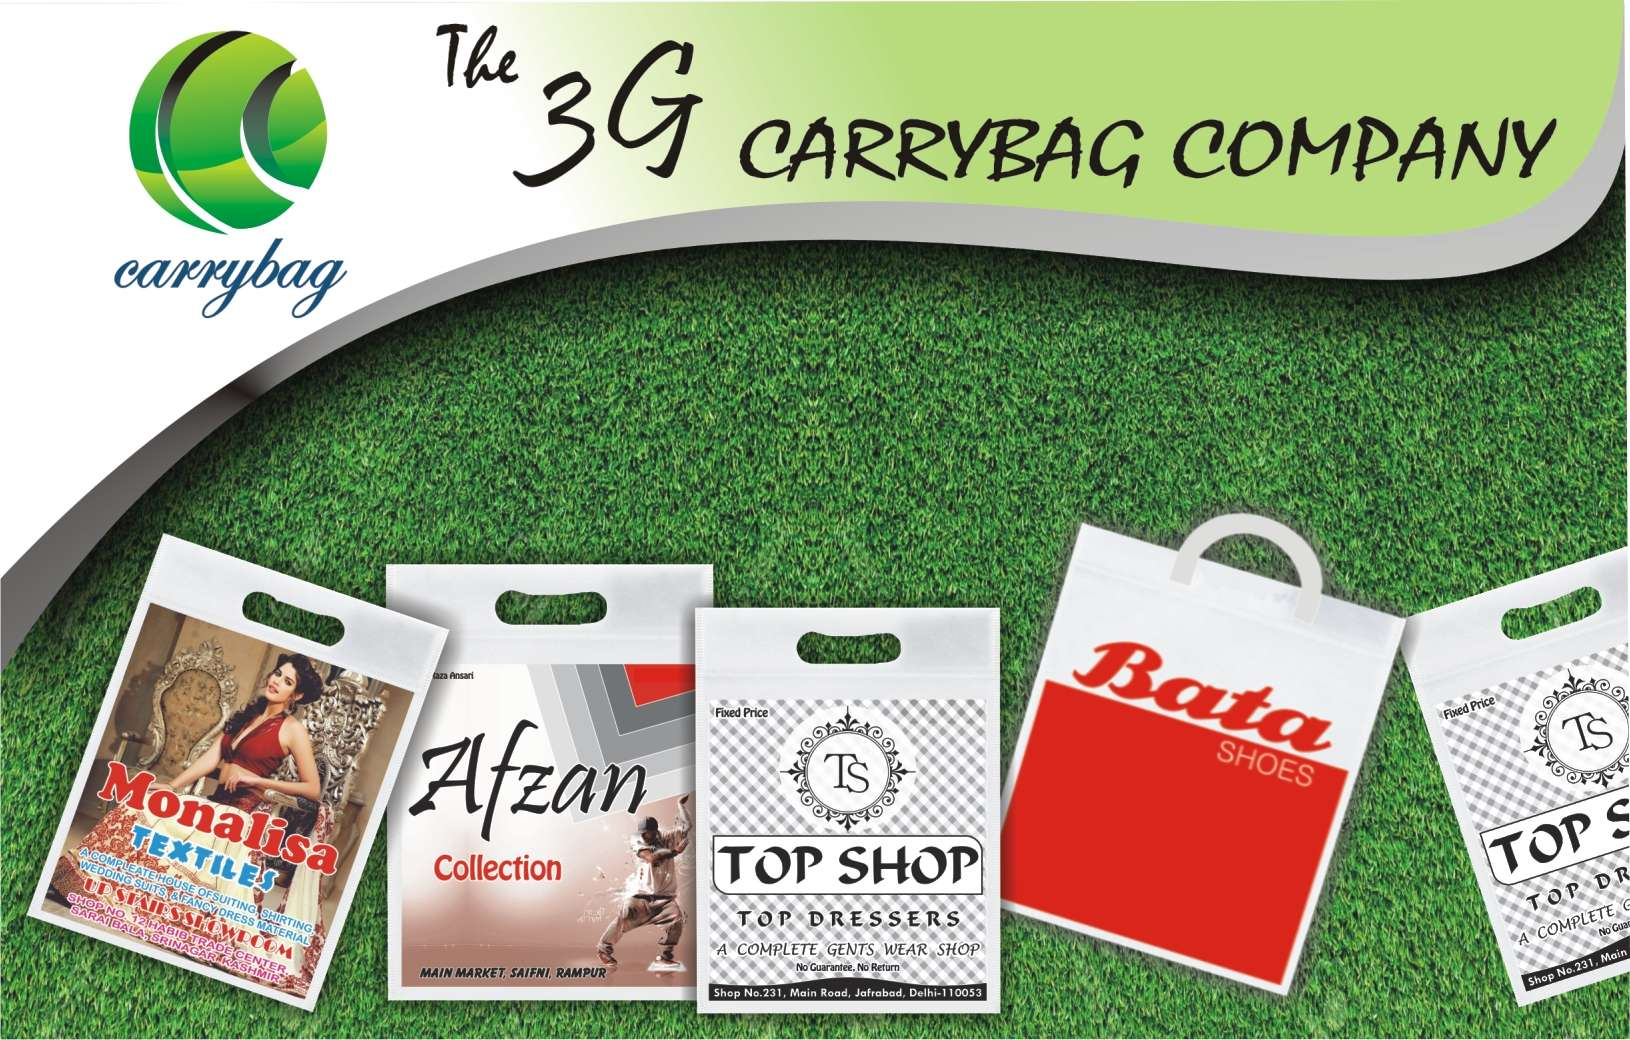 The 3g Carrybag Company